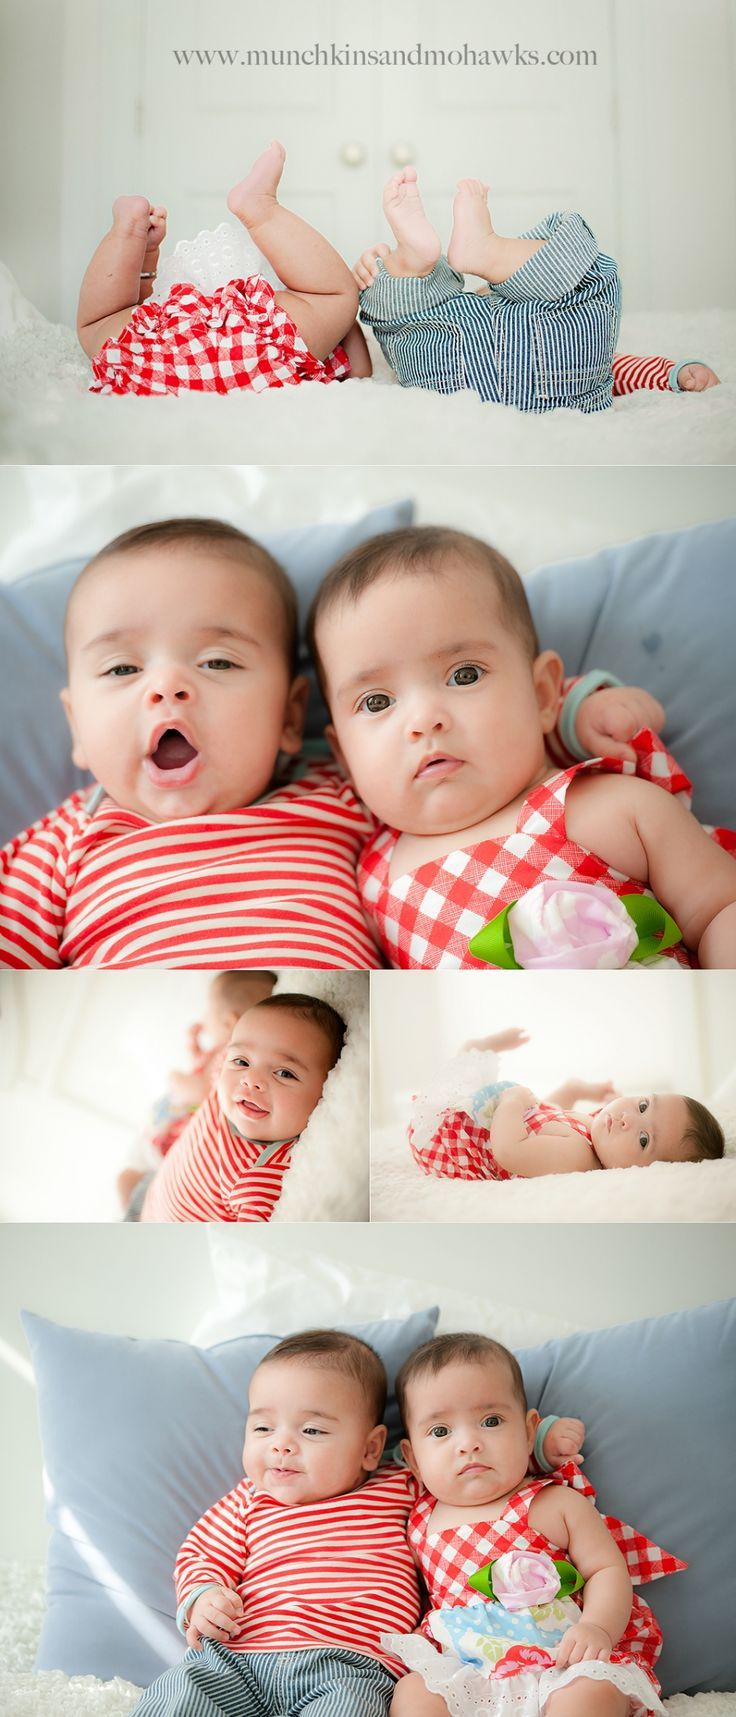 83 best gemelos images on pinterest | twins, baby photos and cute